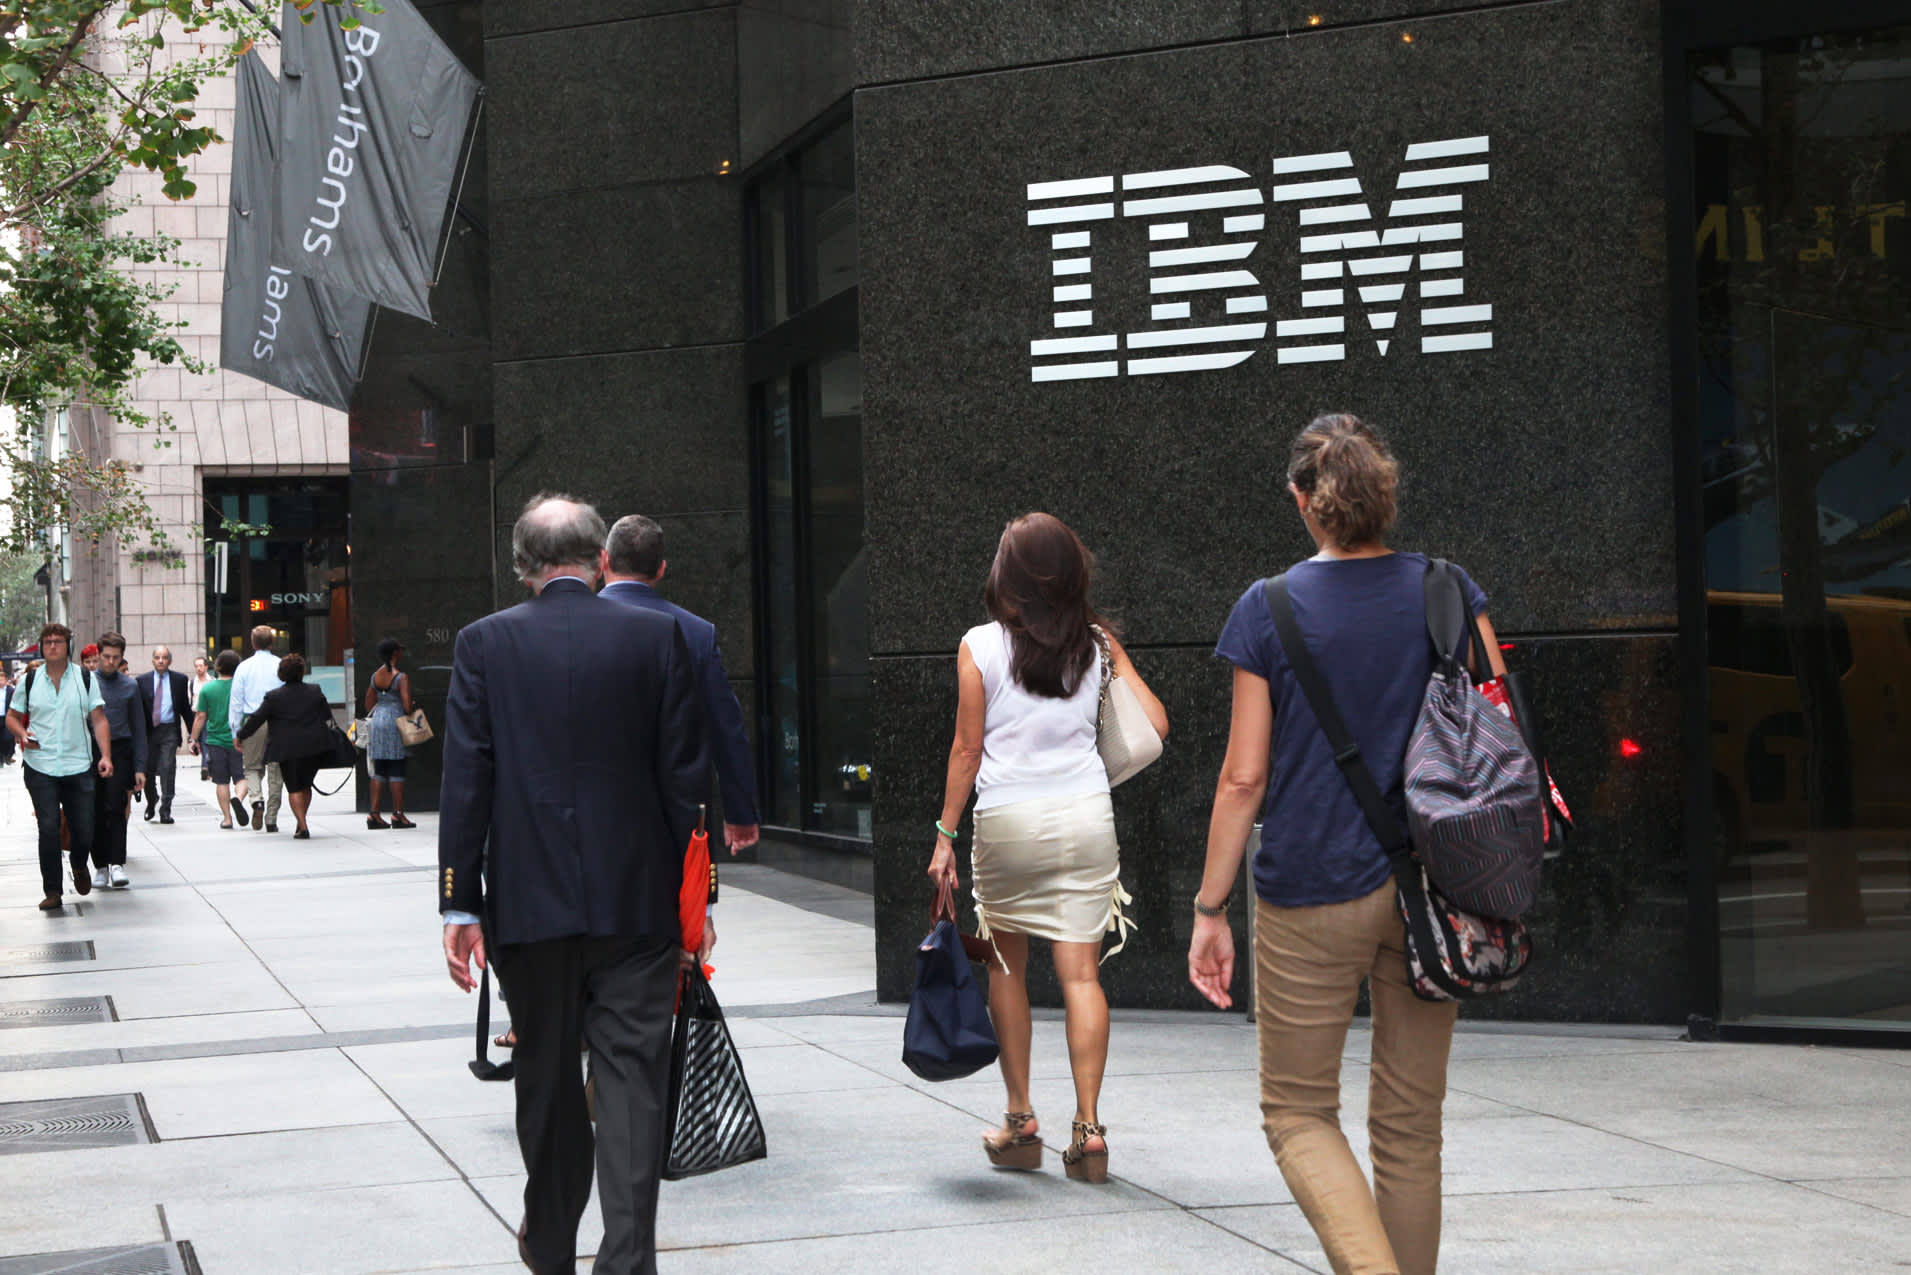 Don't expect IBM shares to rebound any time soon